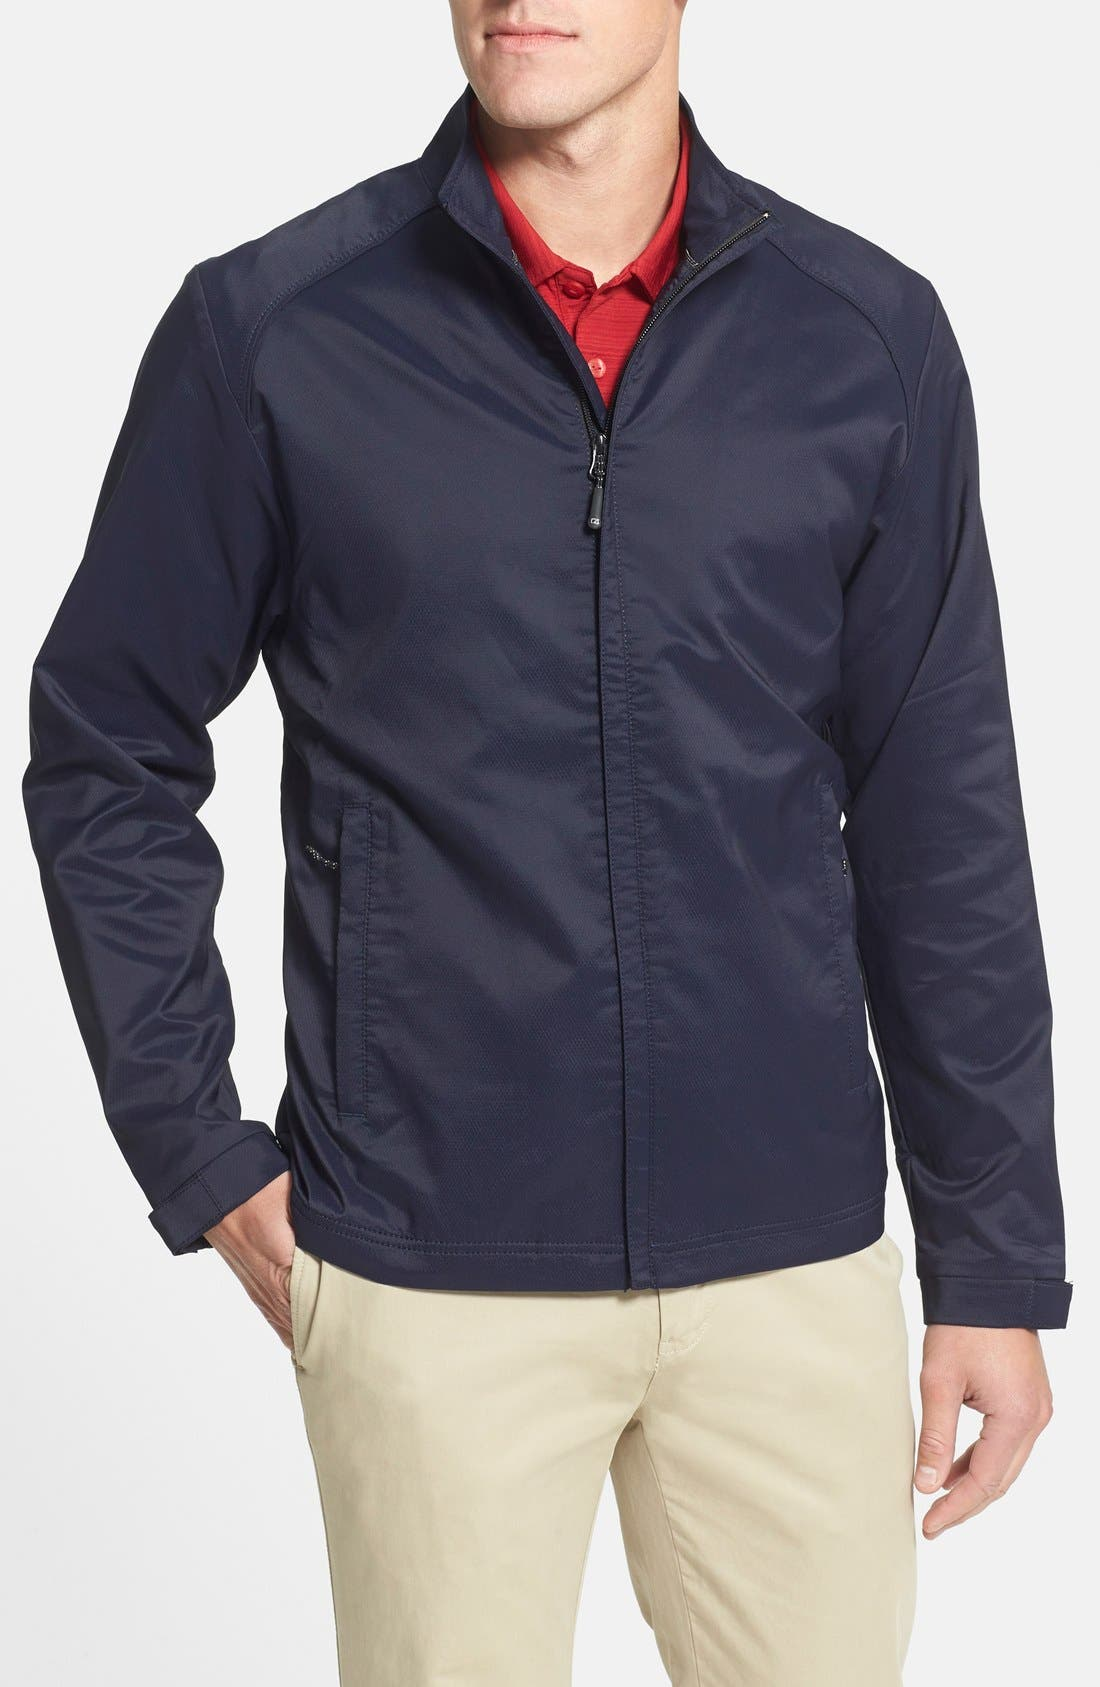 Alternate Image 1 Selected - Cutter & Buck 'Blakely' WeatherTec® Wind & Water Resistant Full Zip Jacket